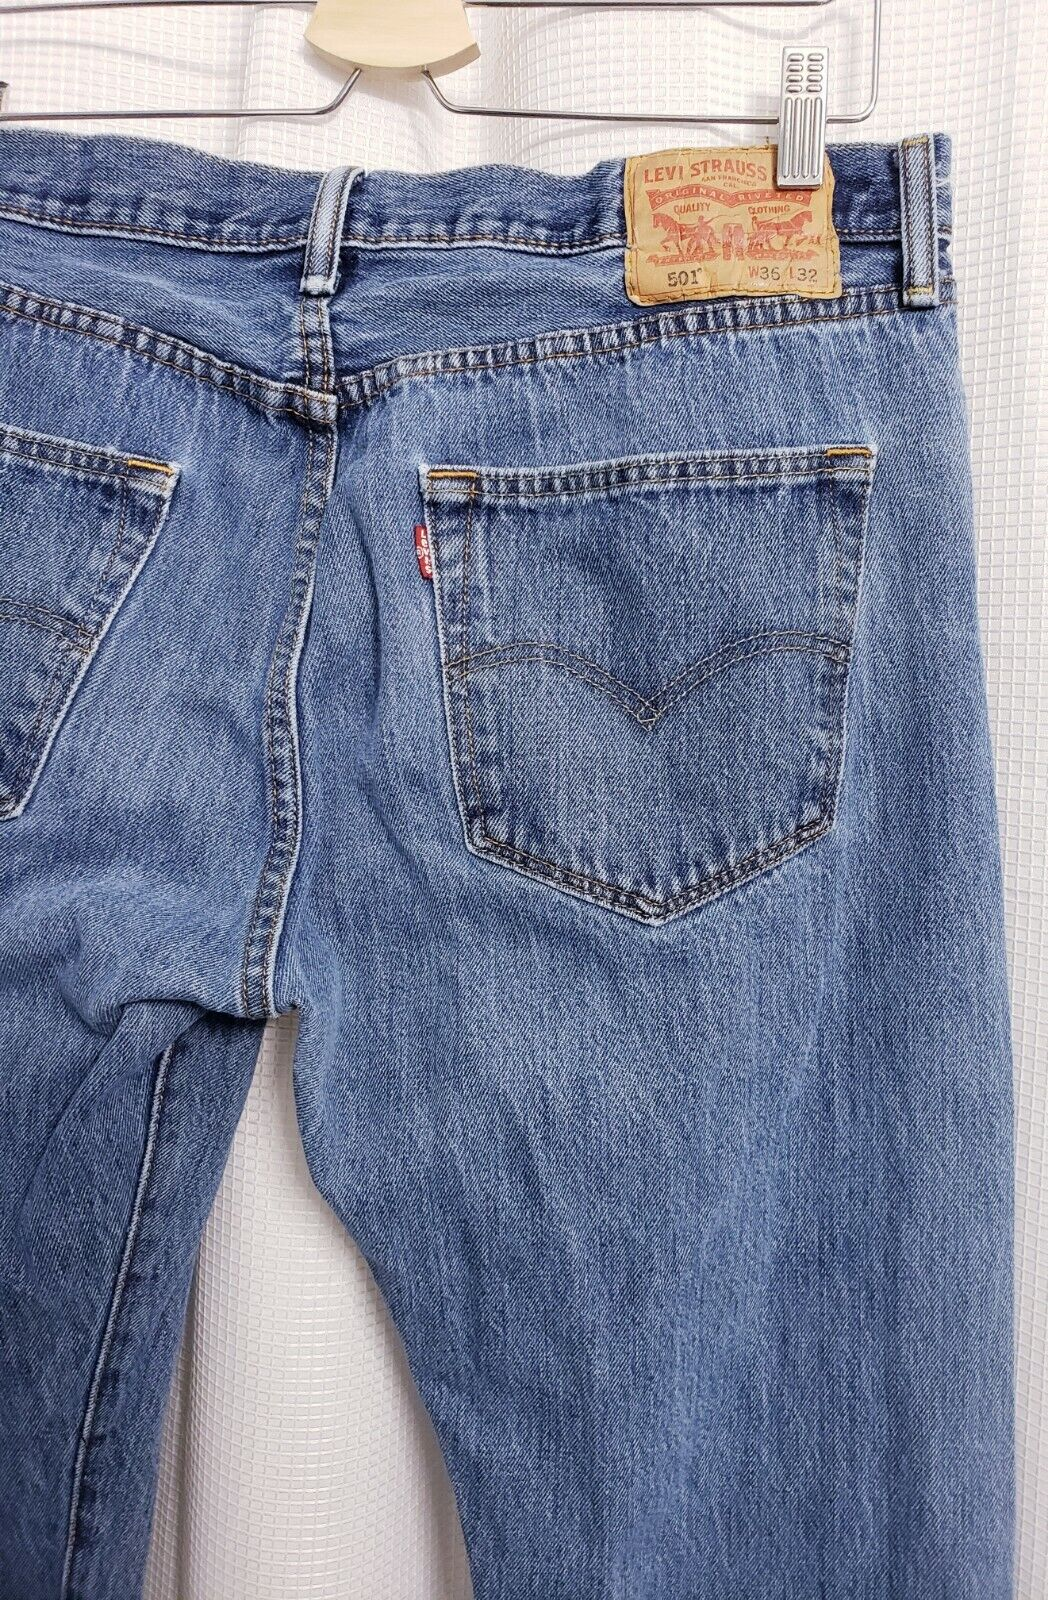 Levis 501 Original Fit Button Fly Distressed Jean… - image 6